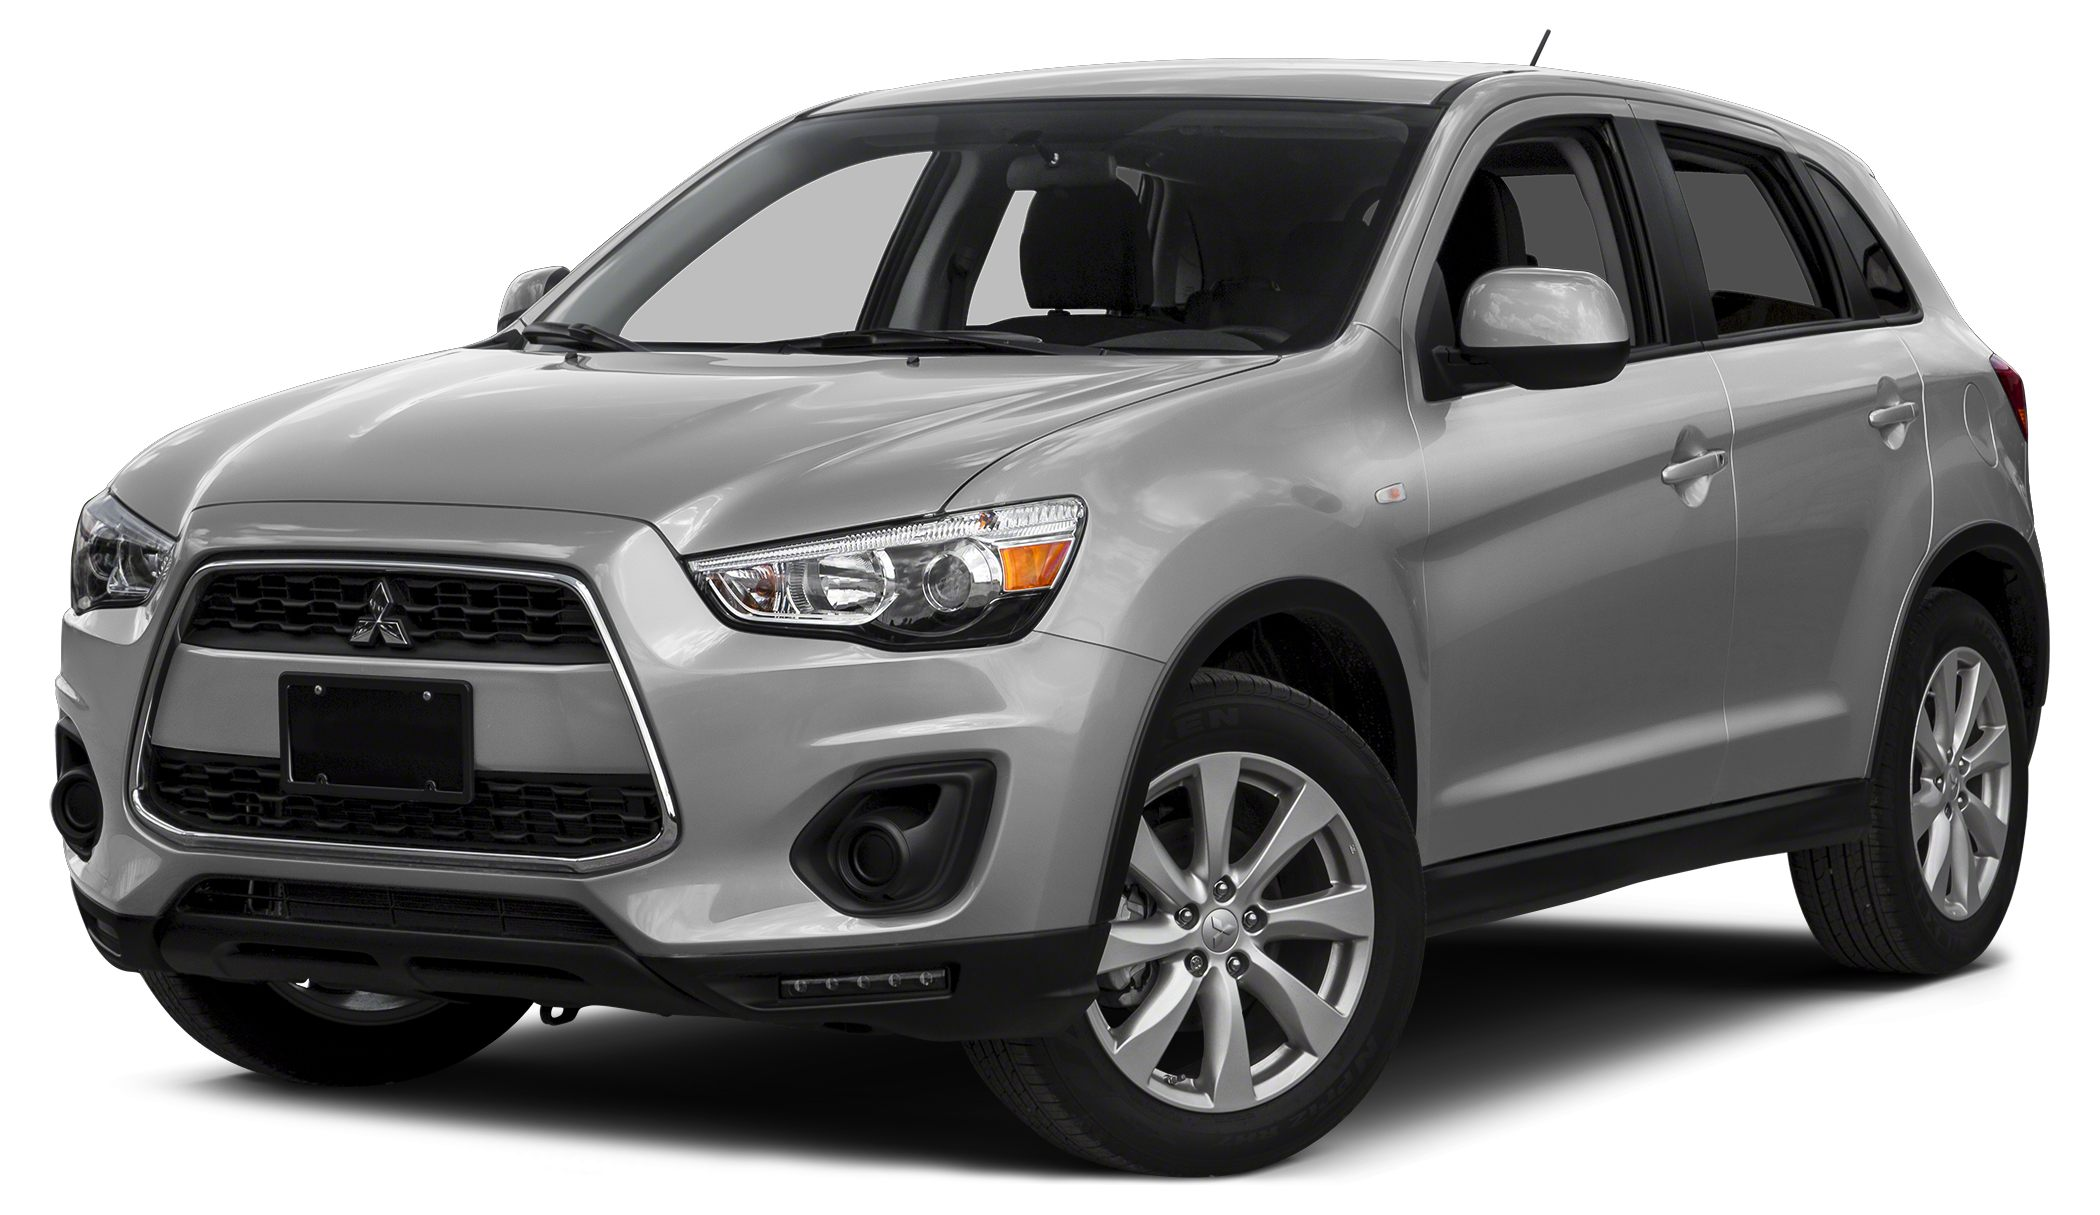 2015 Mitsubishi Outlander Sport GT New Arrival This 2015 Mitsubishi OUTLANDER SPORT has a sharp Qu